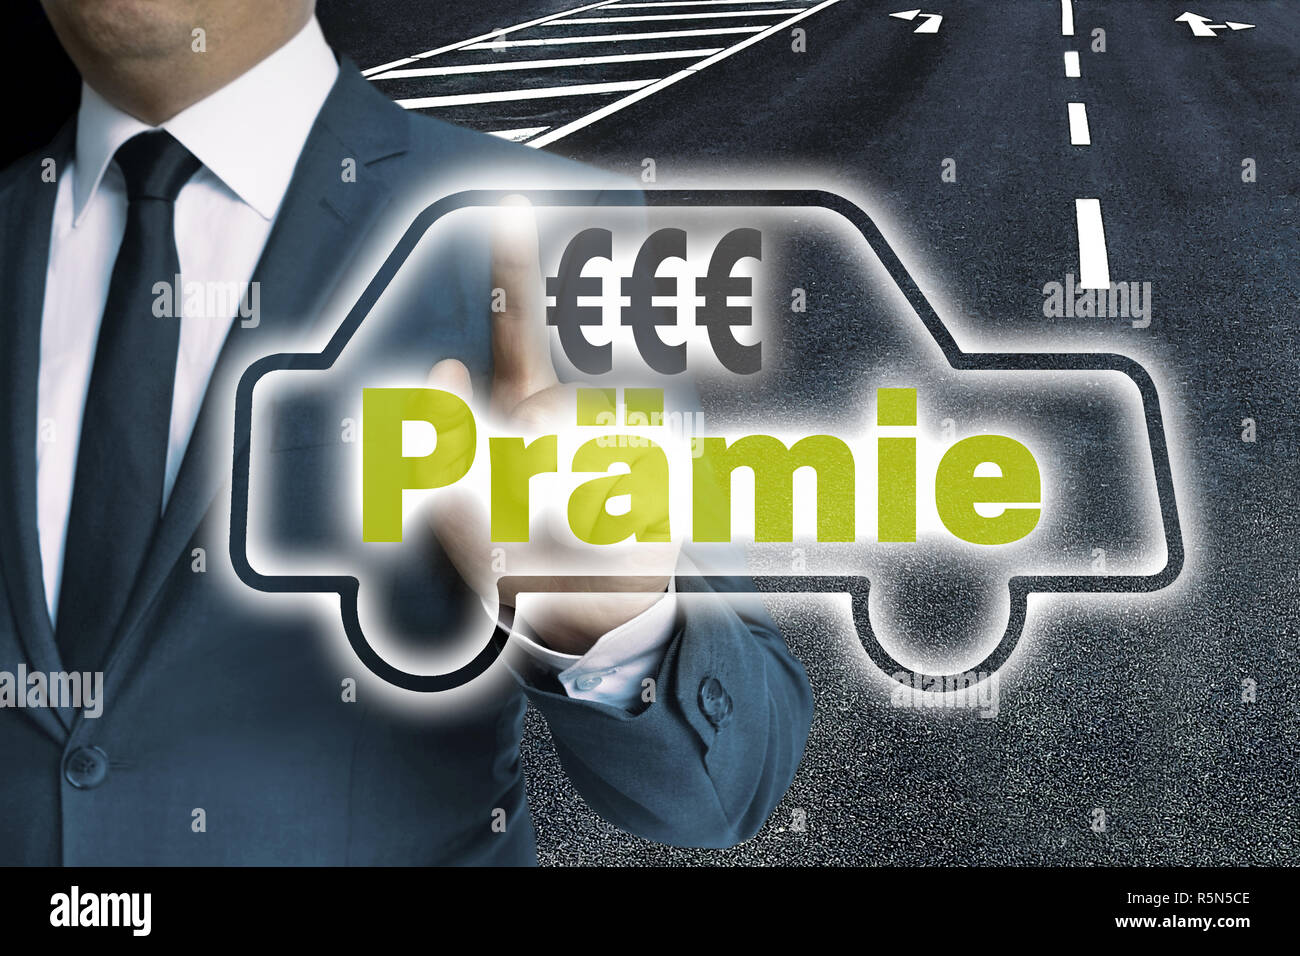 new arrival great fit factory outlets Premium Car Stock Photos & Premium Car Stock Images - Alamy